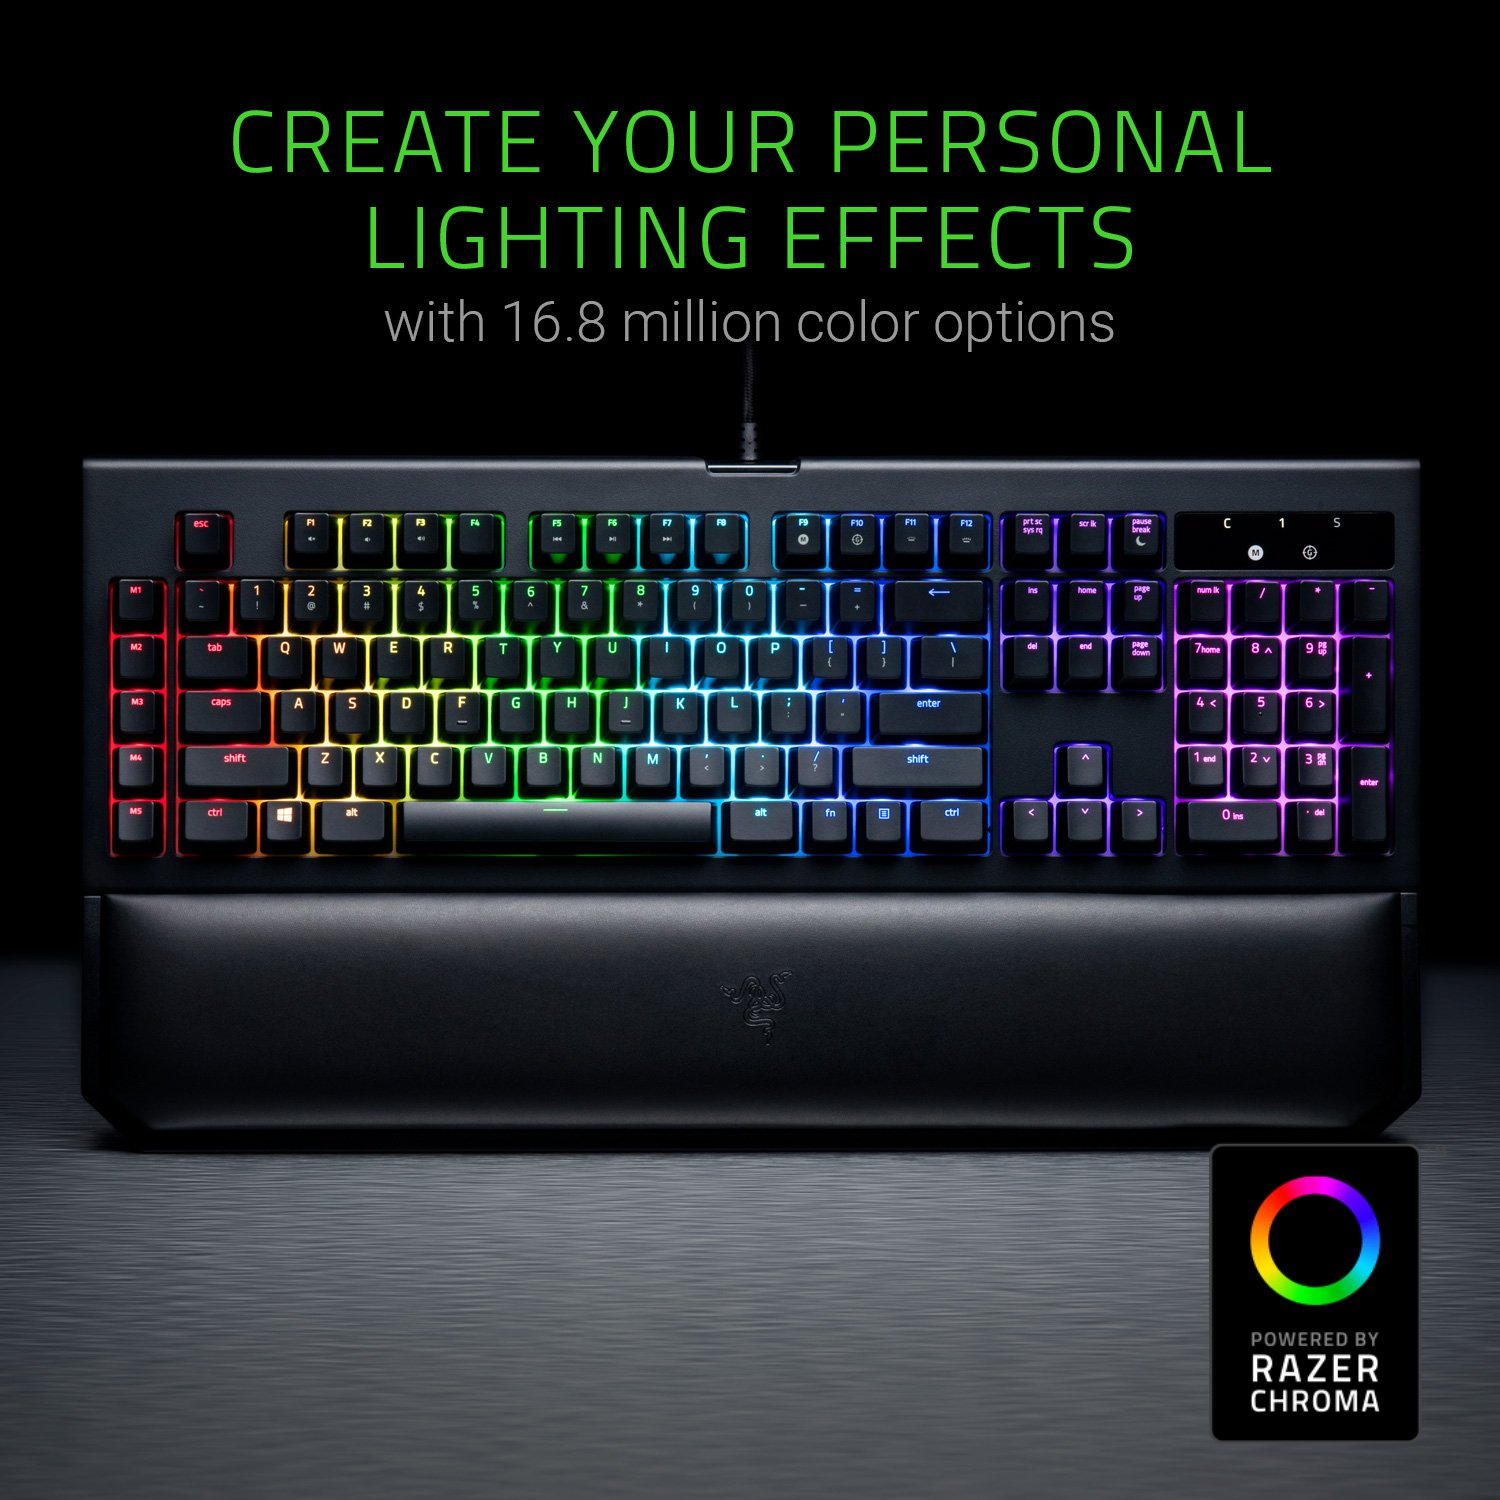 Chroma Razer RGB Gaming Keyboard